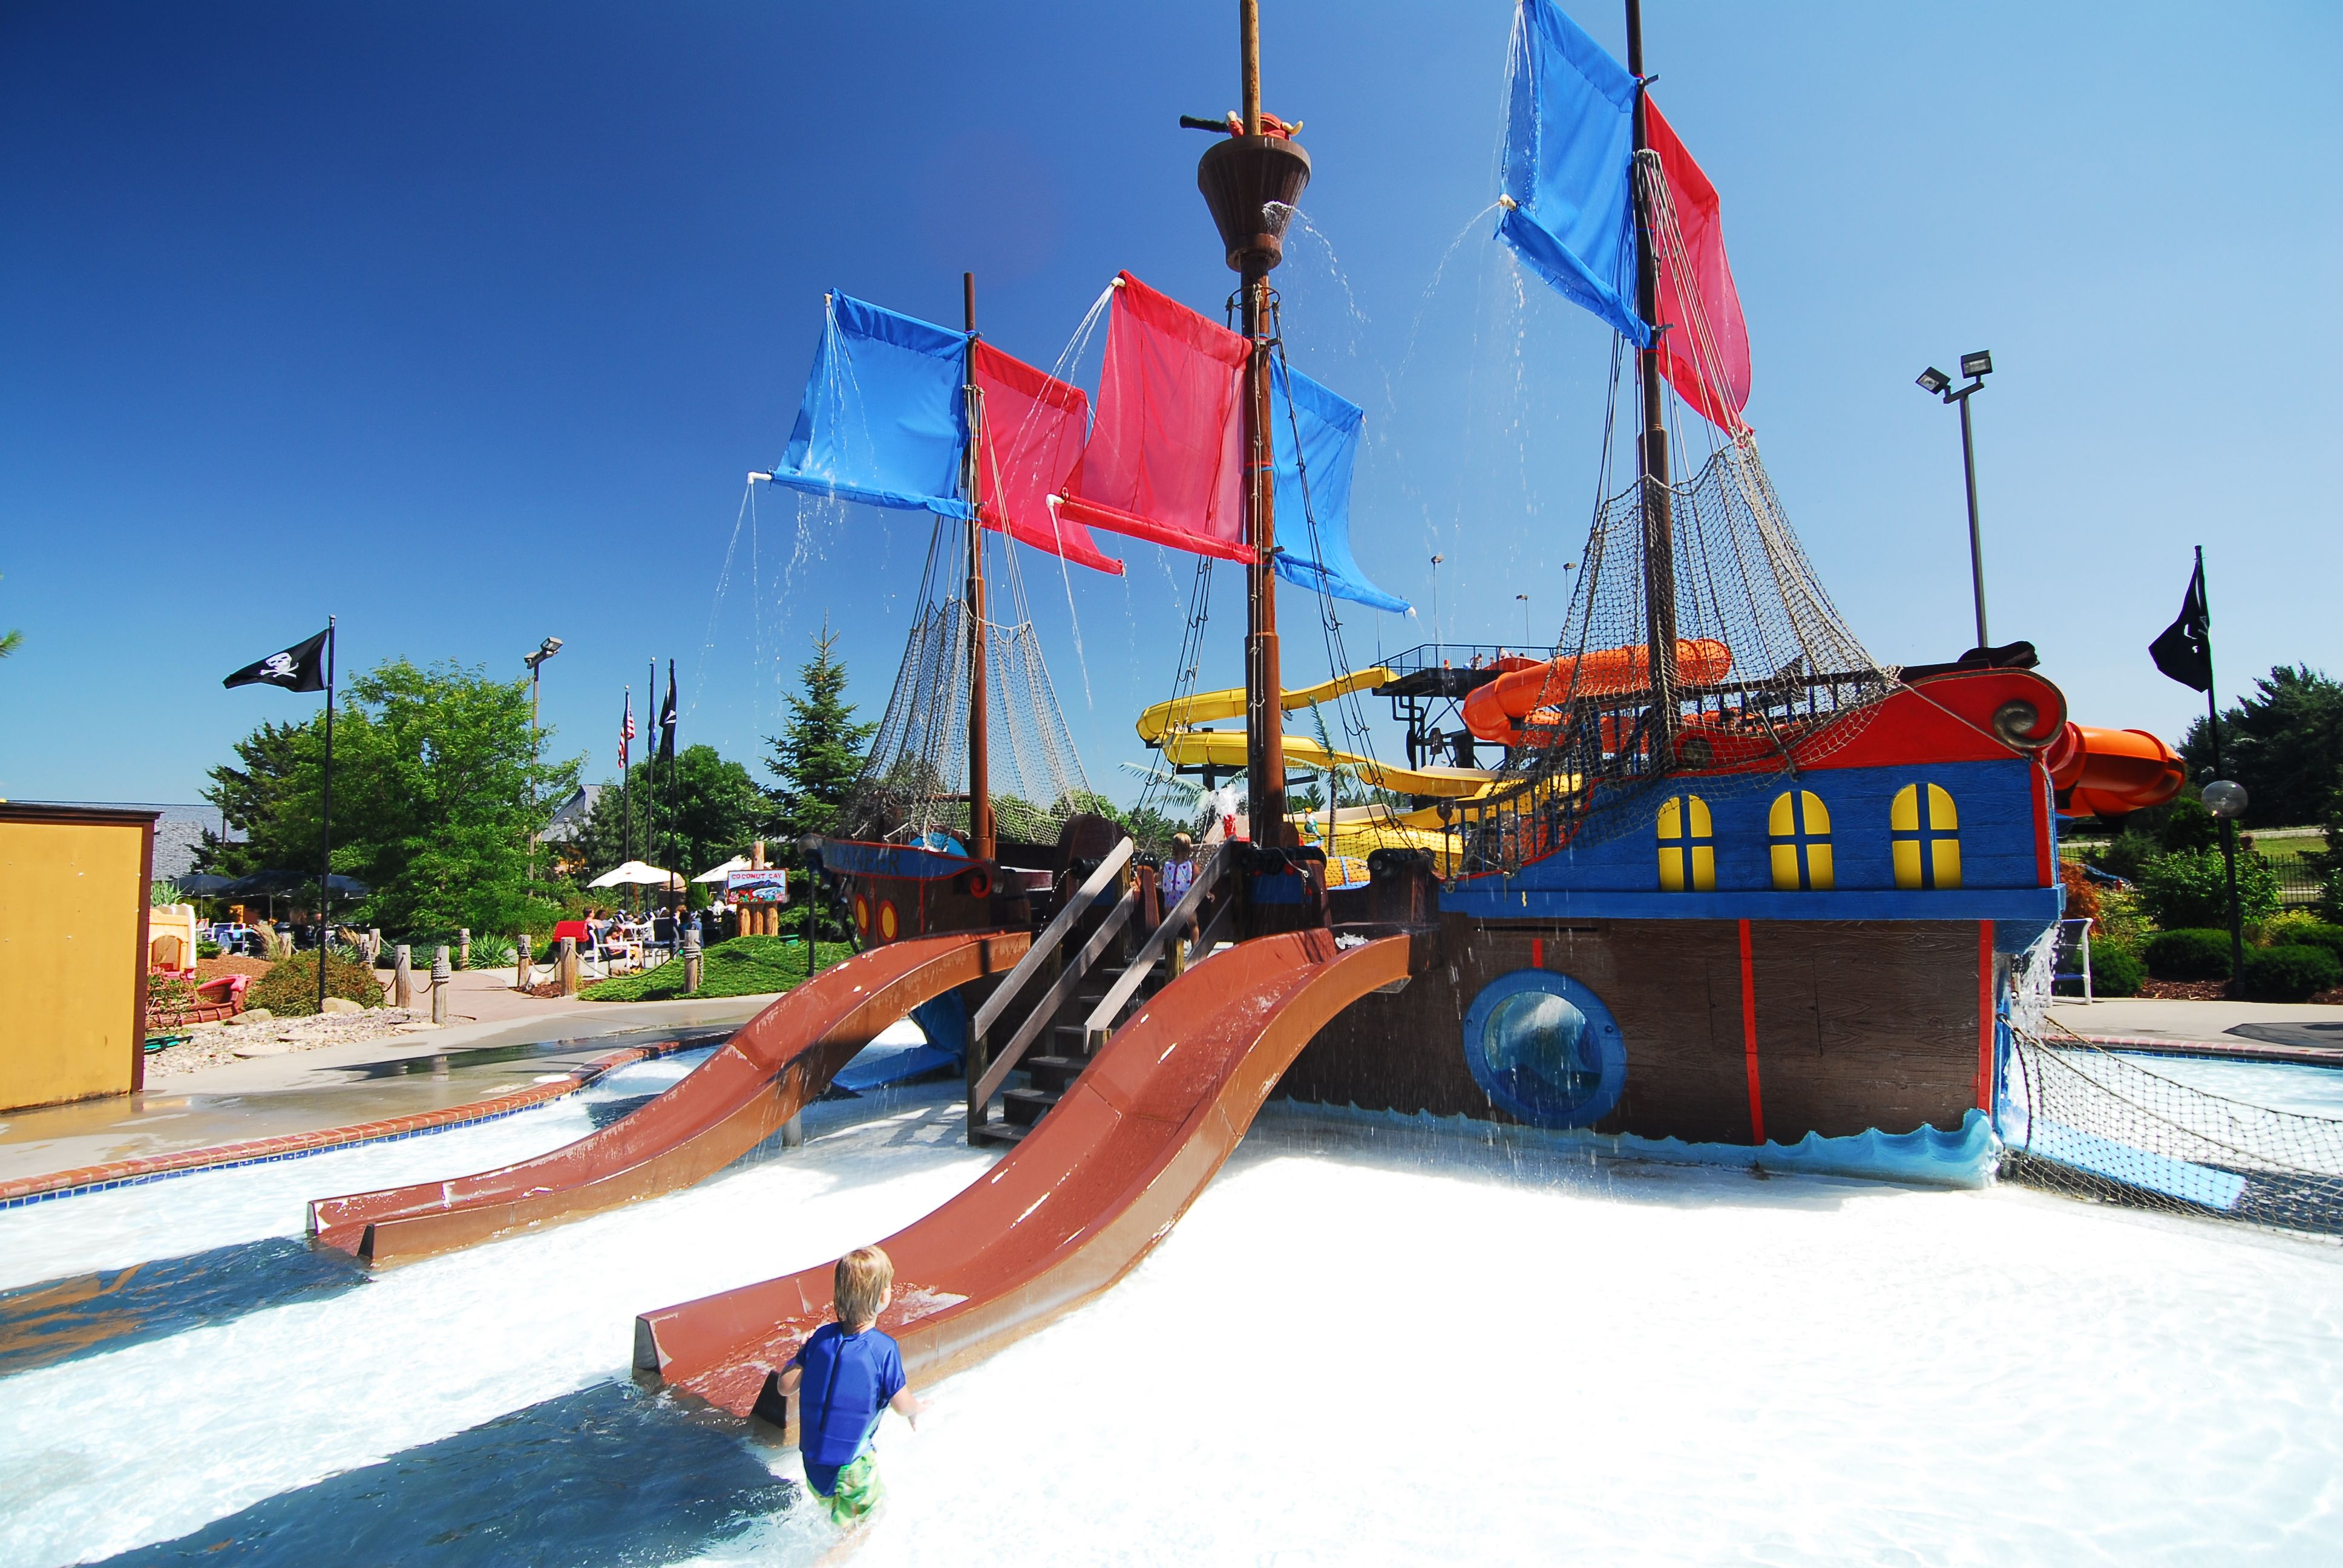 all aboard the pirate ship for some water filled fun at the polynesian hotel in wisconsindells